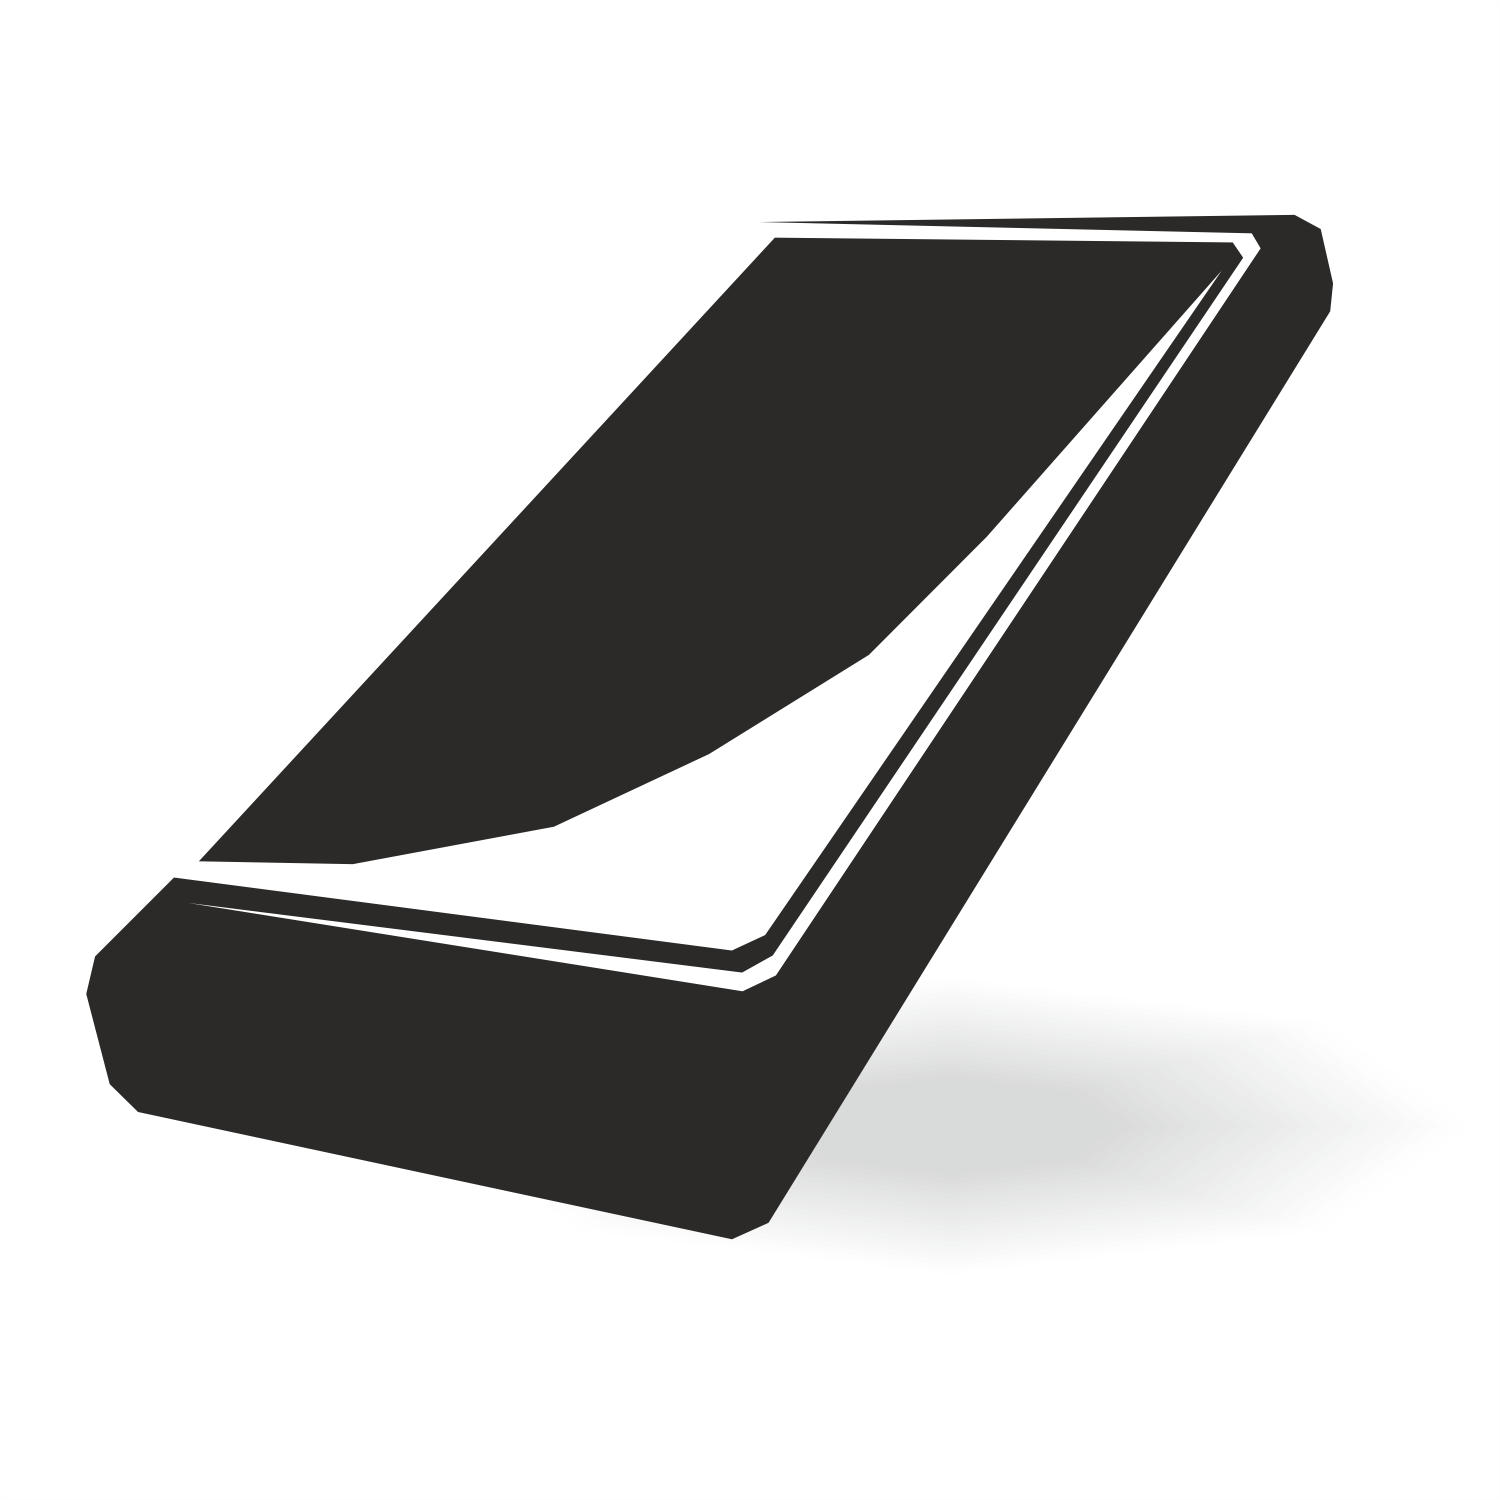 Black phone on white background. Vector graphics.